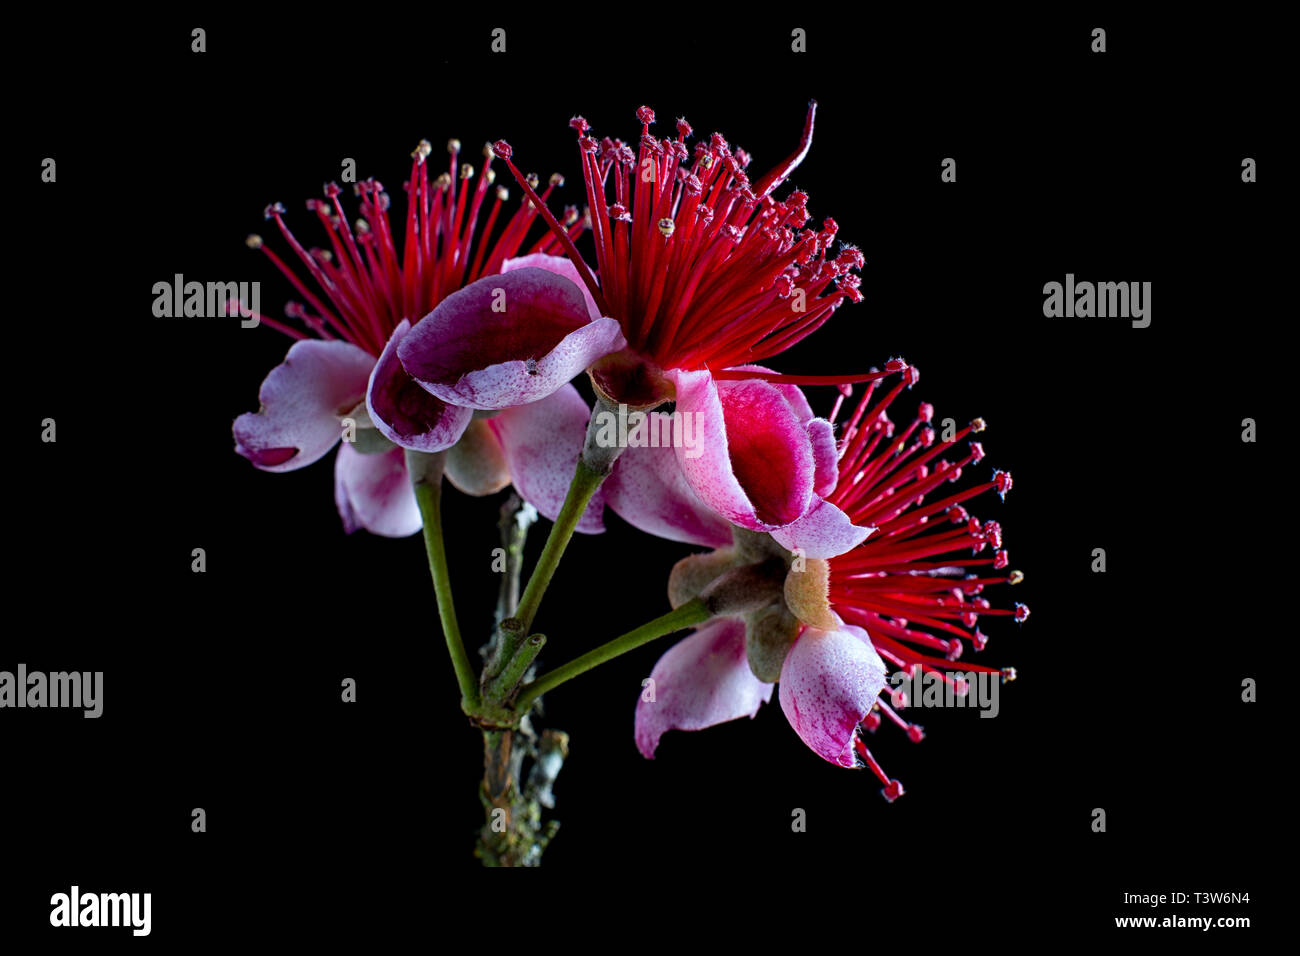 Flower Of Guava Stock Photos Flower Of Guava Stock Images Alamy